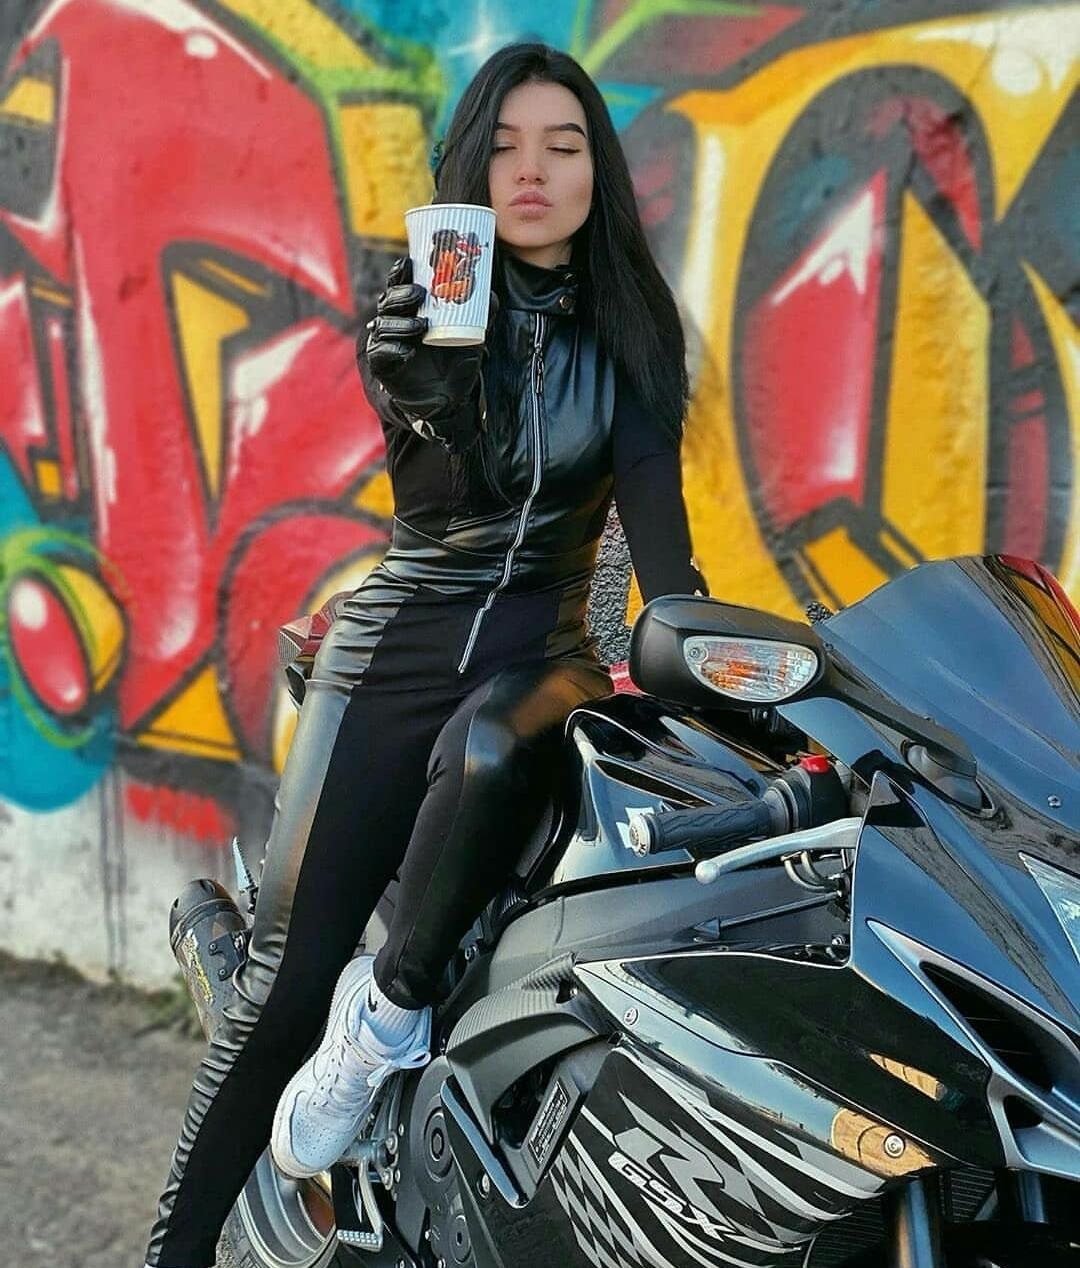 Picture with tags: HD, Motorcycles and bicycles, Girl